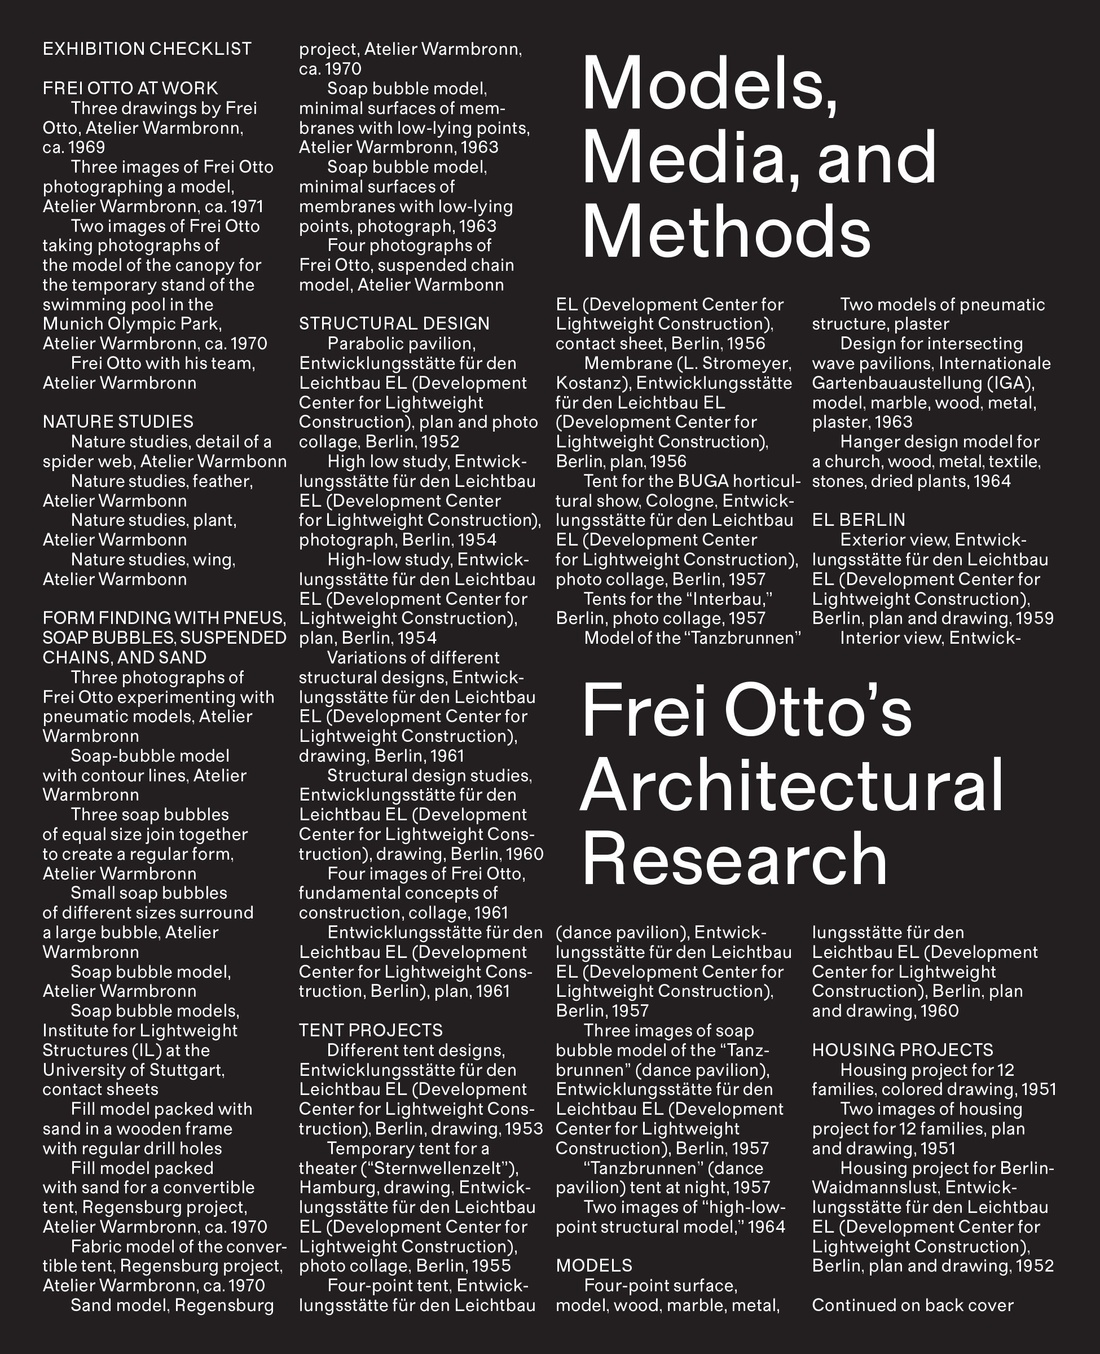 Cover of Models, Media, and Methods exhibition catalog